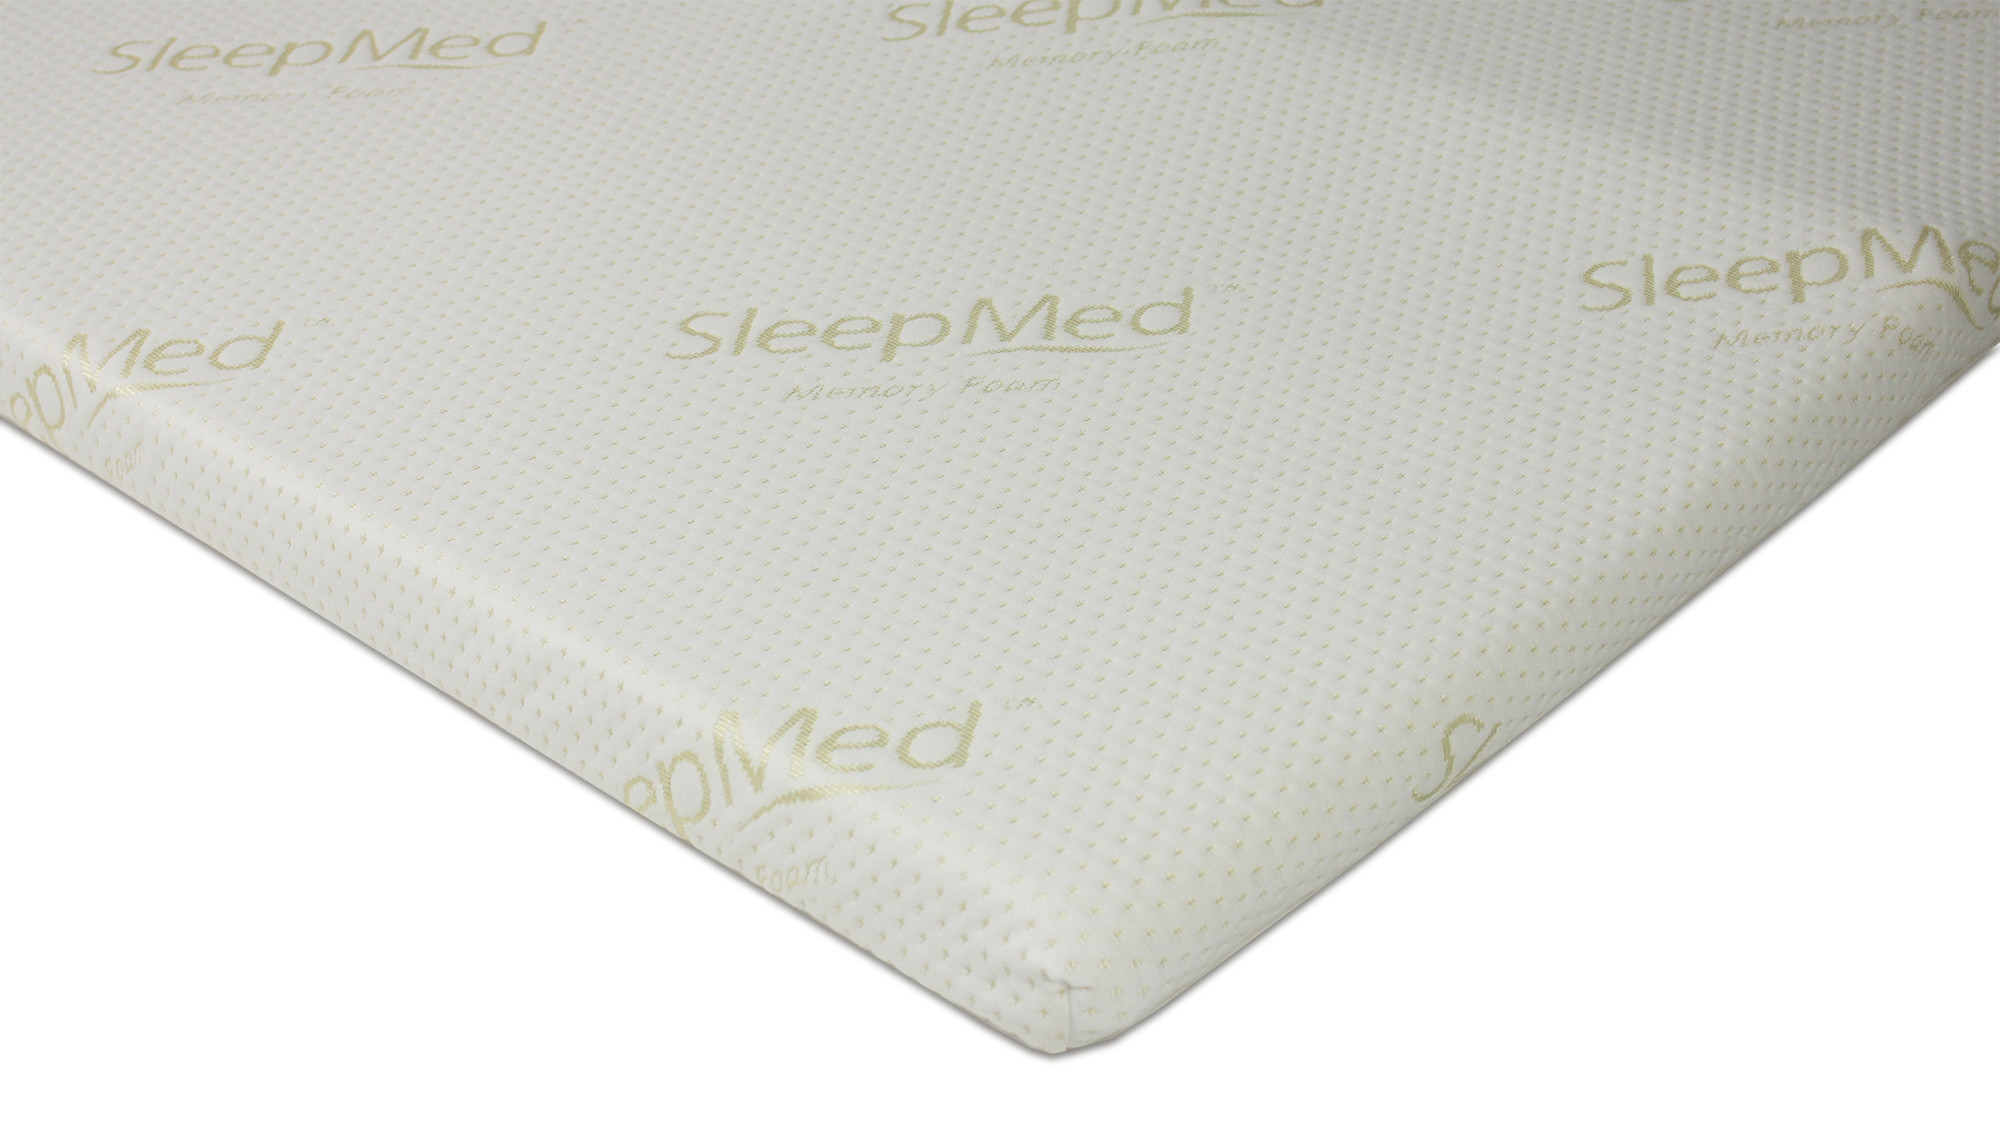 Sleepmed Memory Foam Topper Queen Size Furniture Home Décor